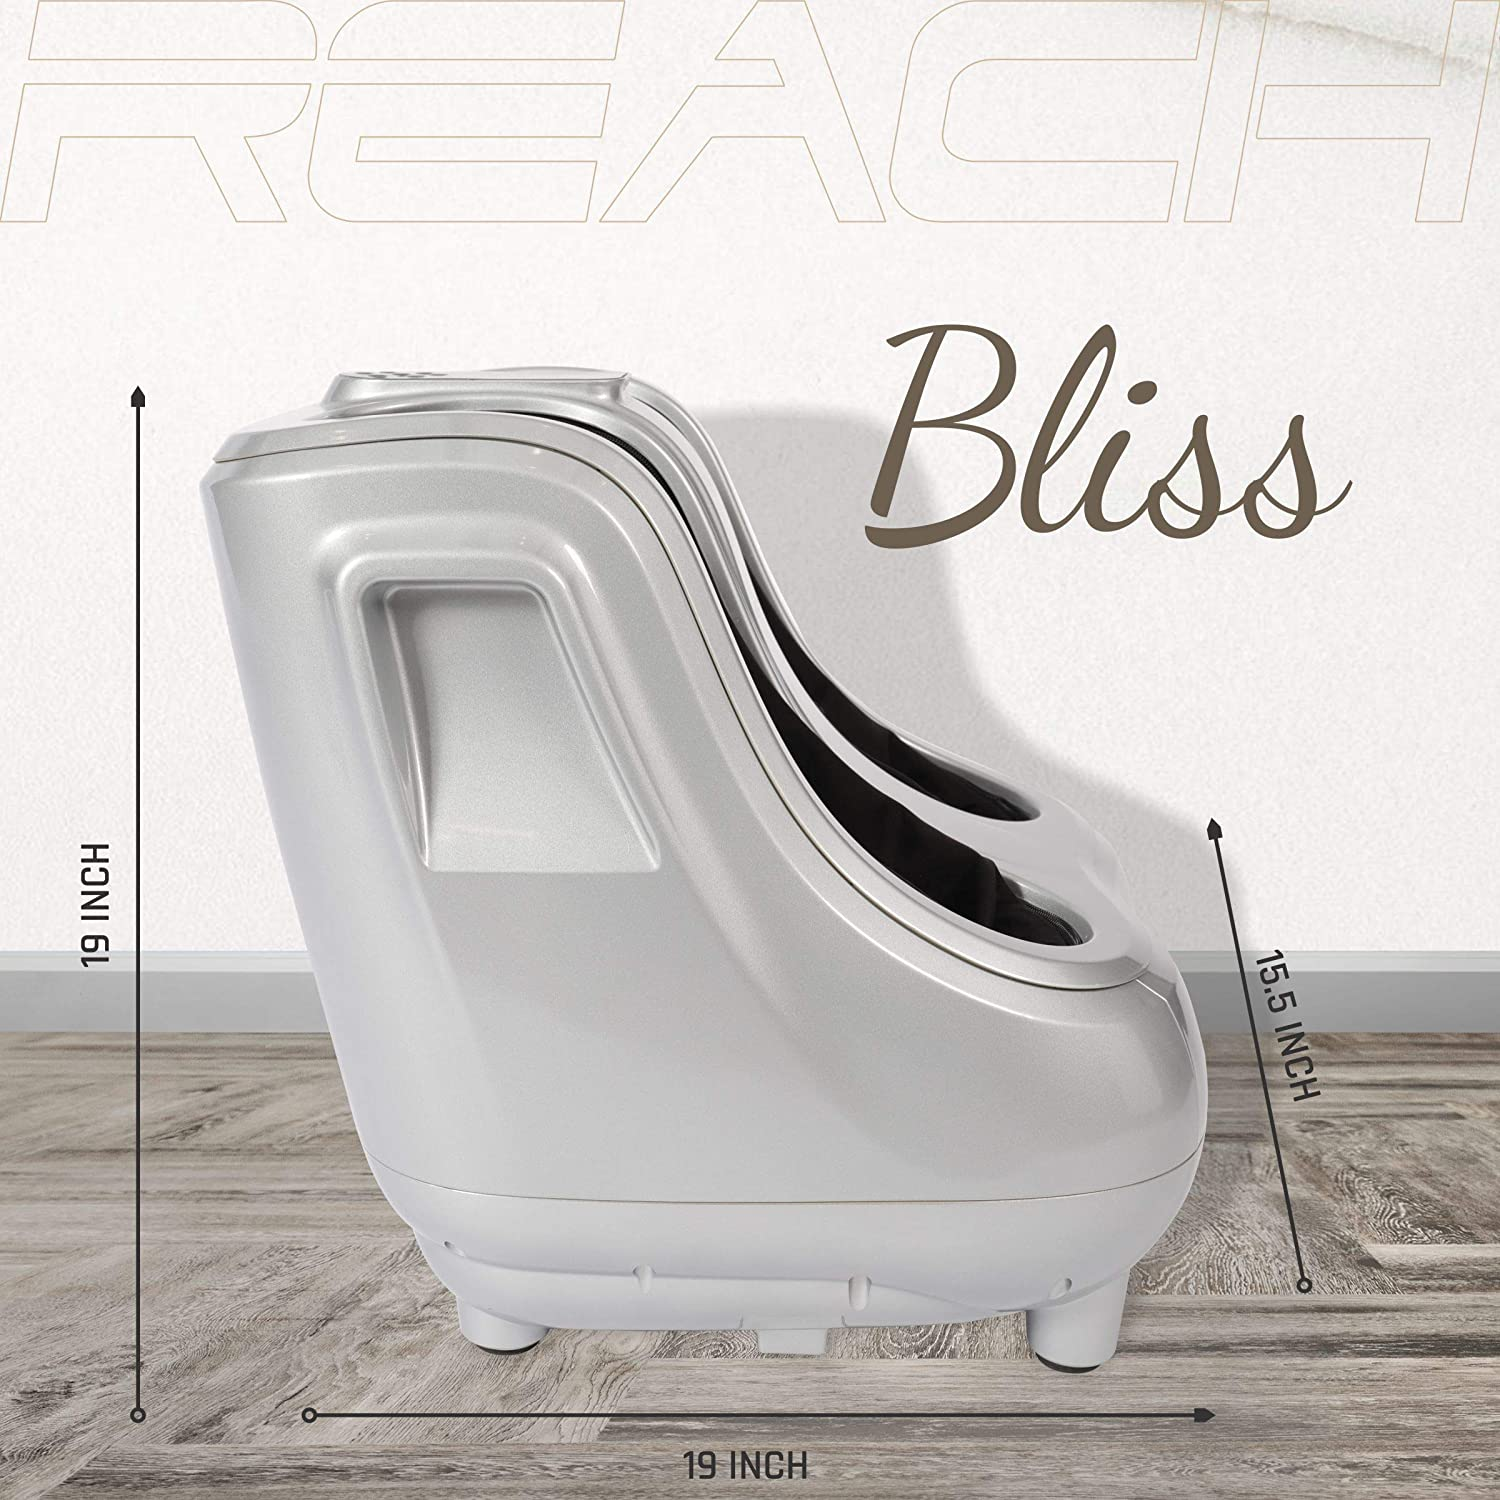 Dimensions of a Reach Bliss Leg Massager.